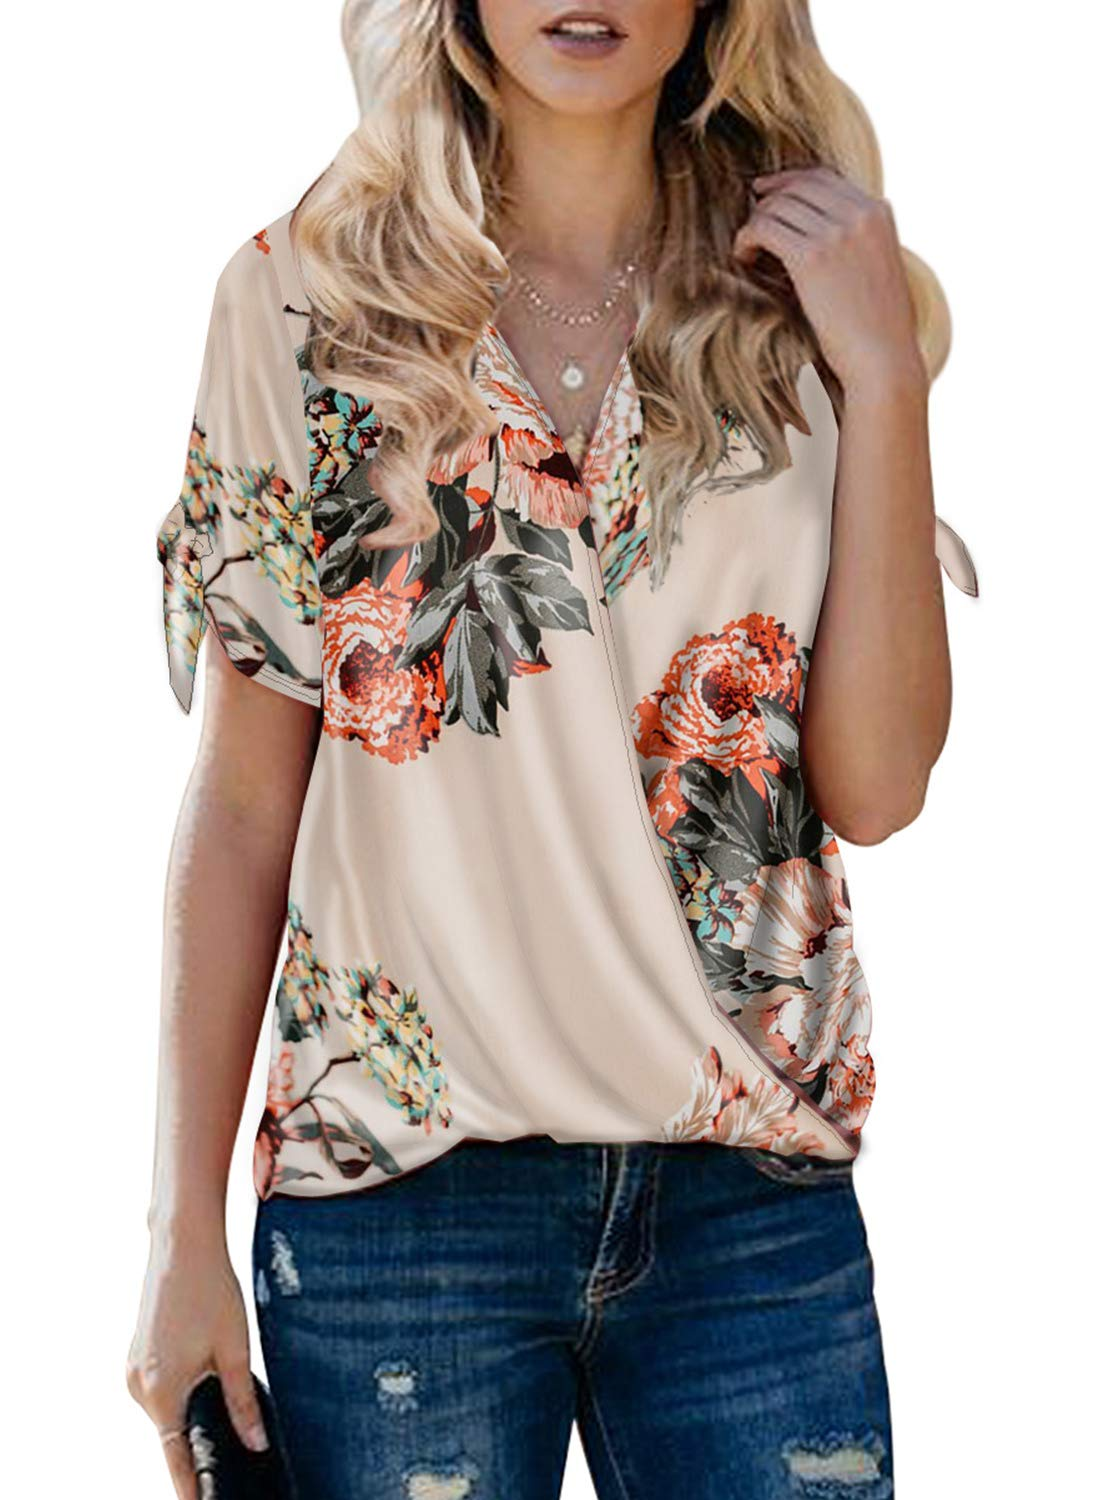 Chase Secret Women's V Neck Floral Print Tie Sleeve Top Casual Loose Blouse Shirts